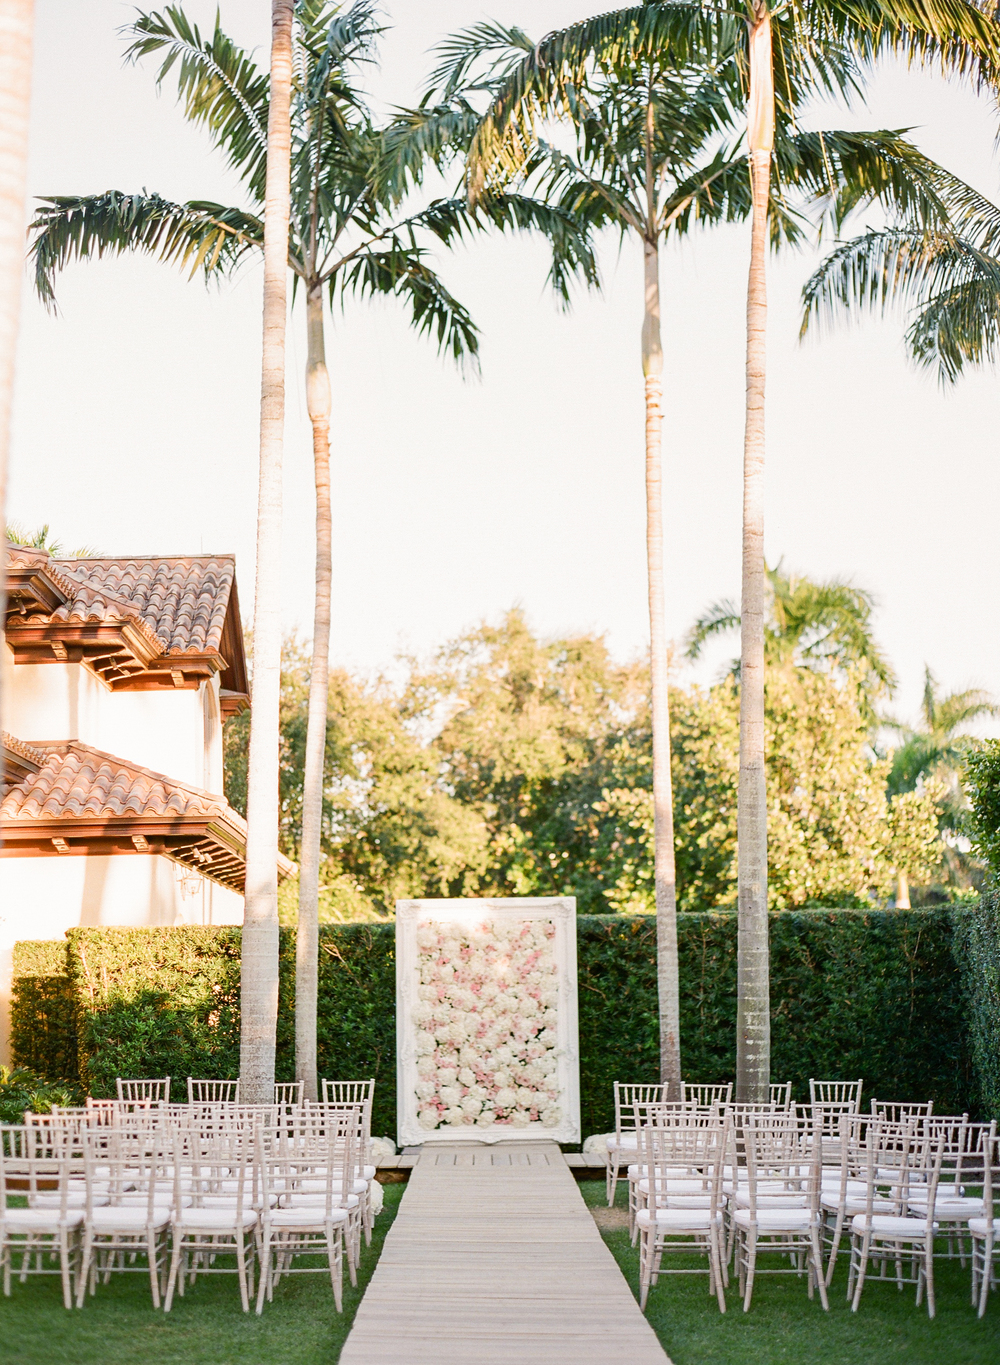 Ceci_New_York_Florida_Wedding_Style_Bride_Watercolor_Real_Custom_Luxury_57.jpg